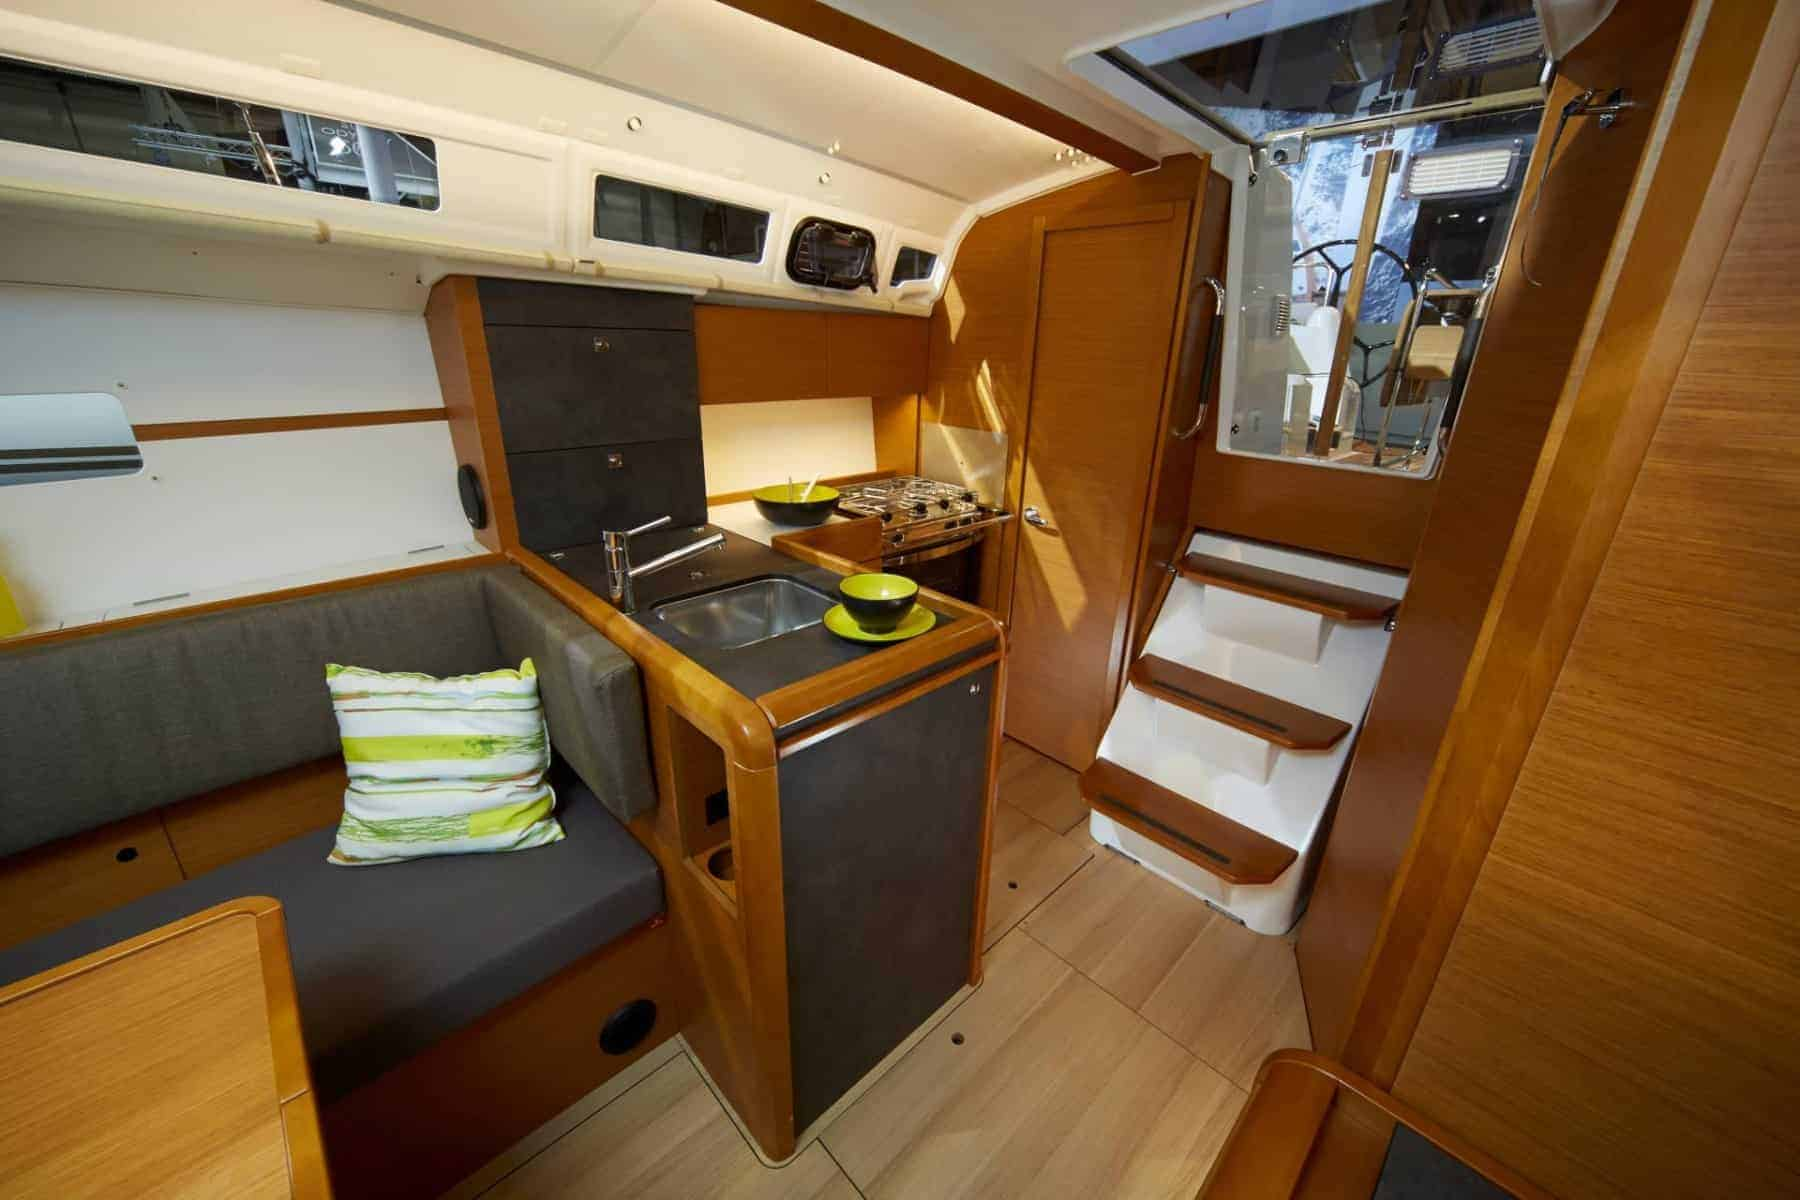 Inside of the saloon of the Jeanneau Sun Odyssey 349 showing the galley and the stairs leading up to deck